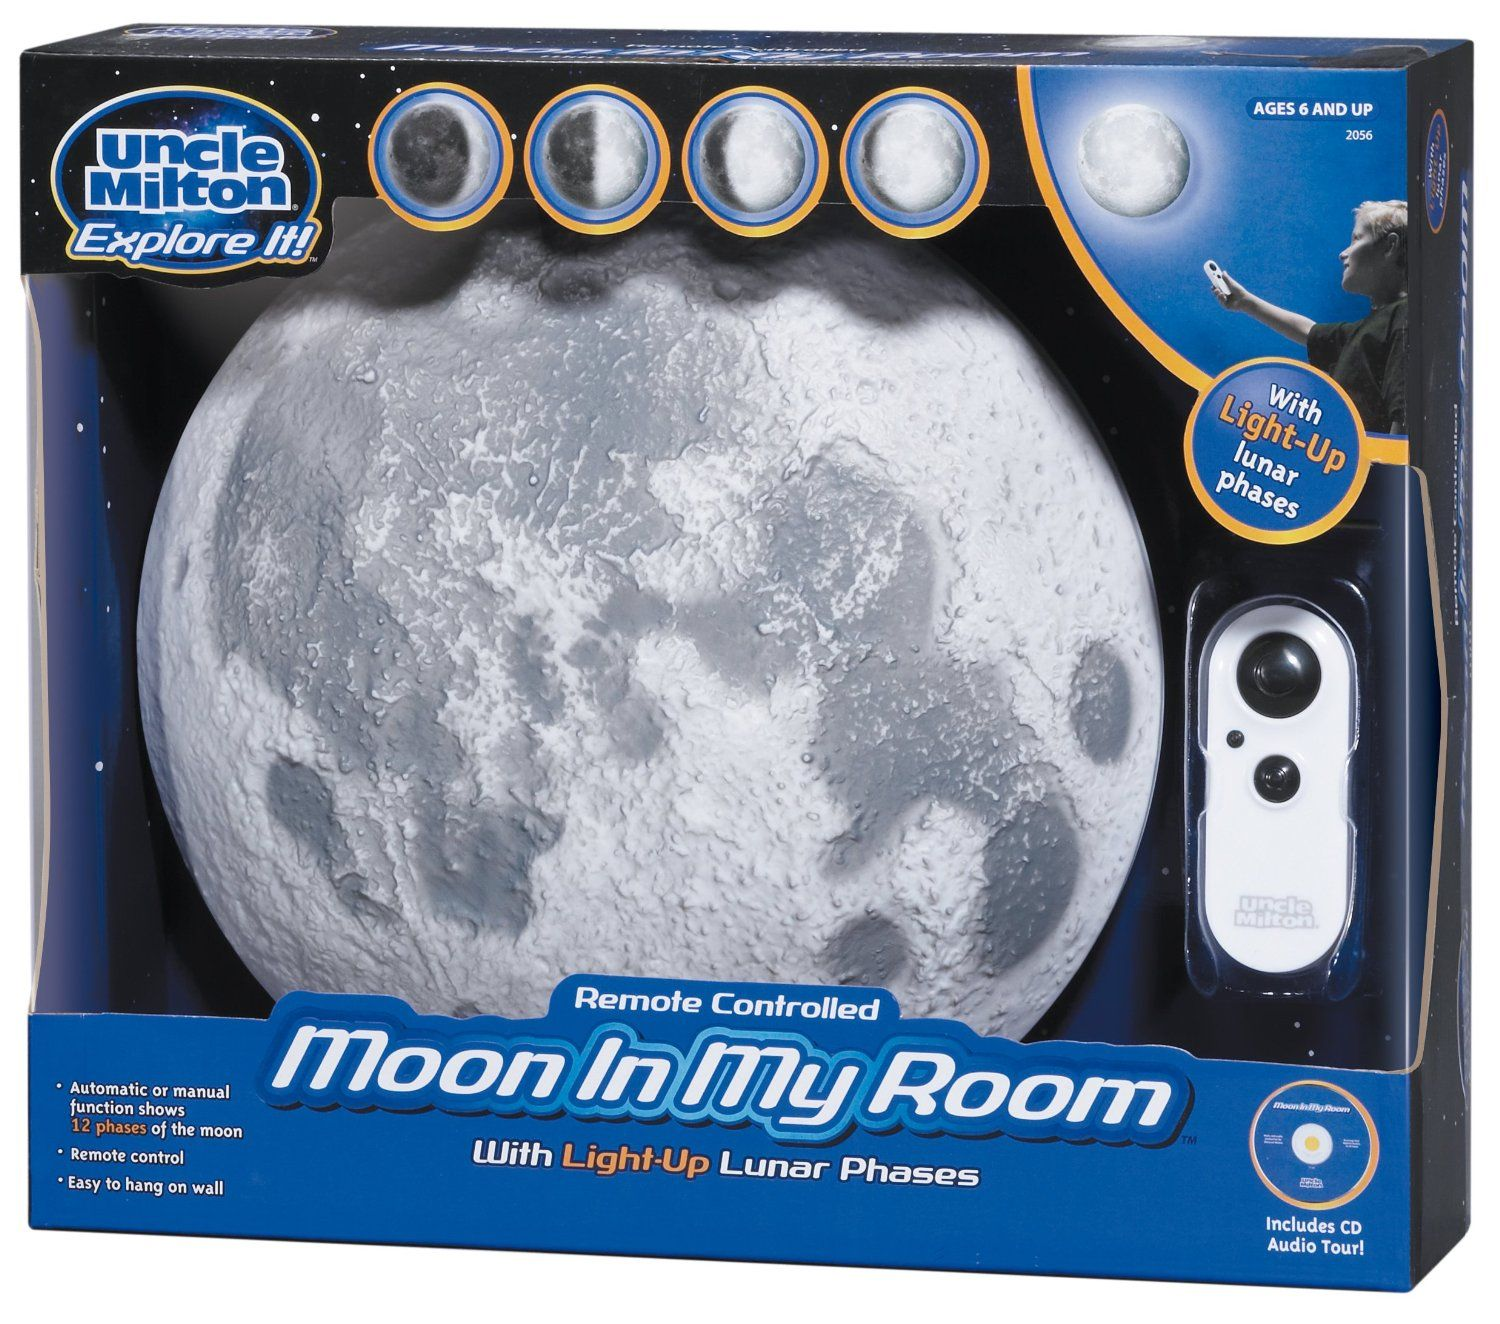 Uncle Milton Moon In My Room Looks